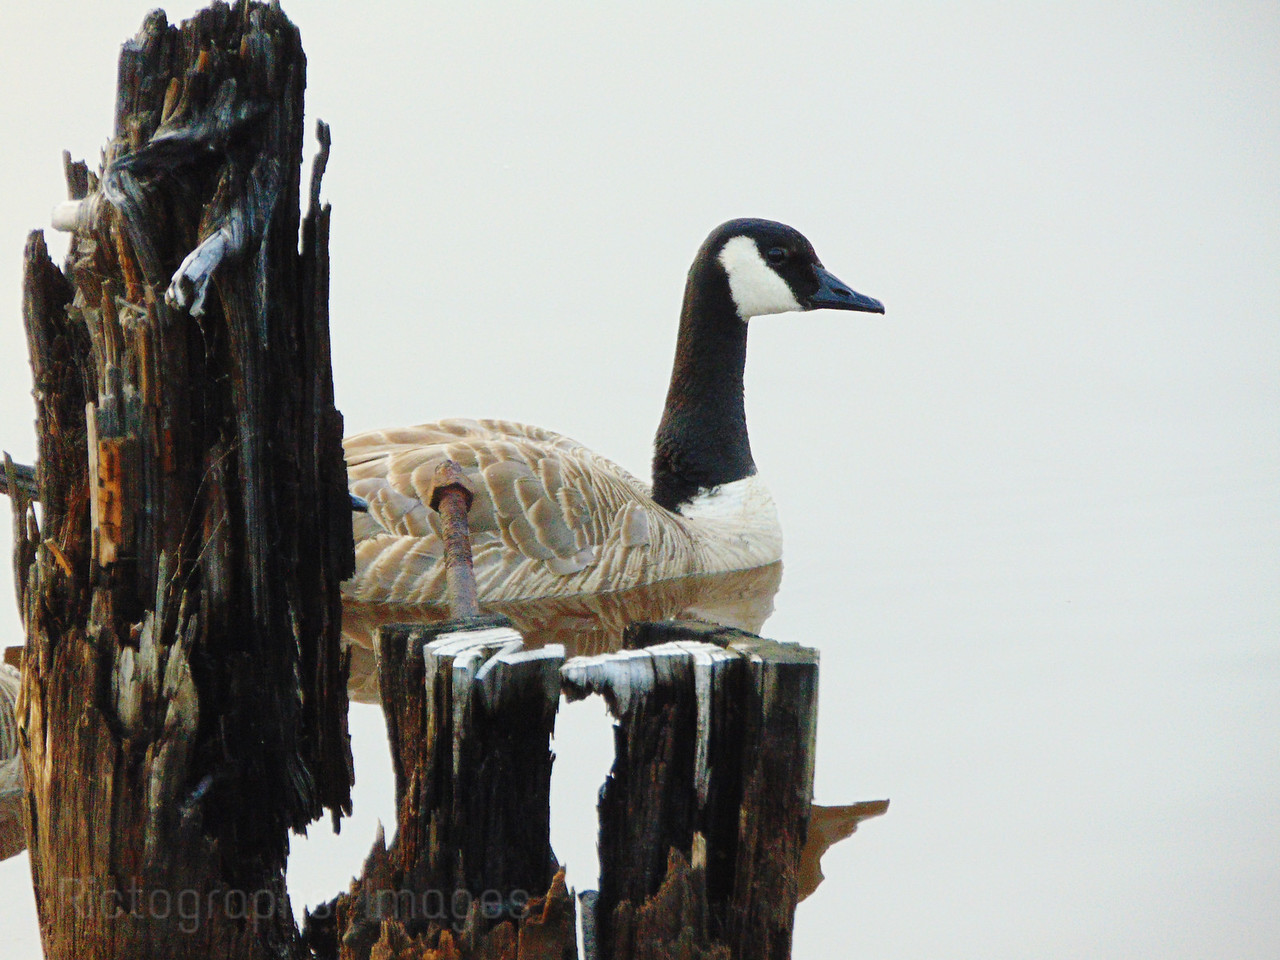 A Canada Goose Among Old Infrastructure